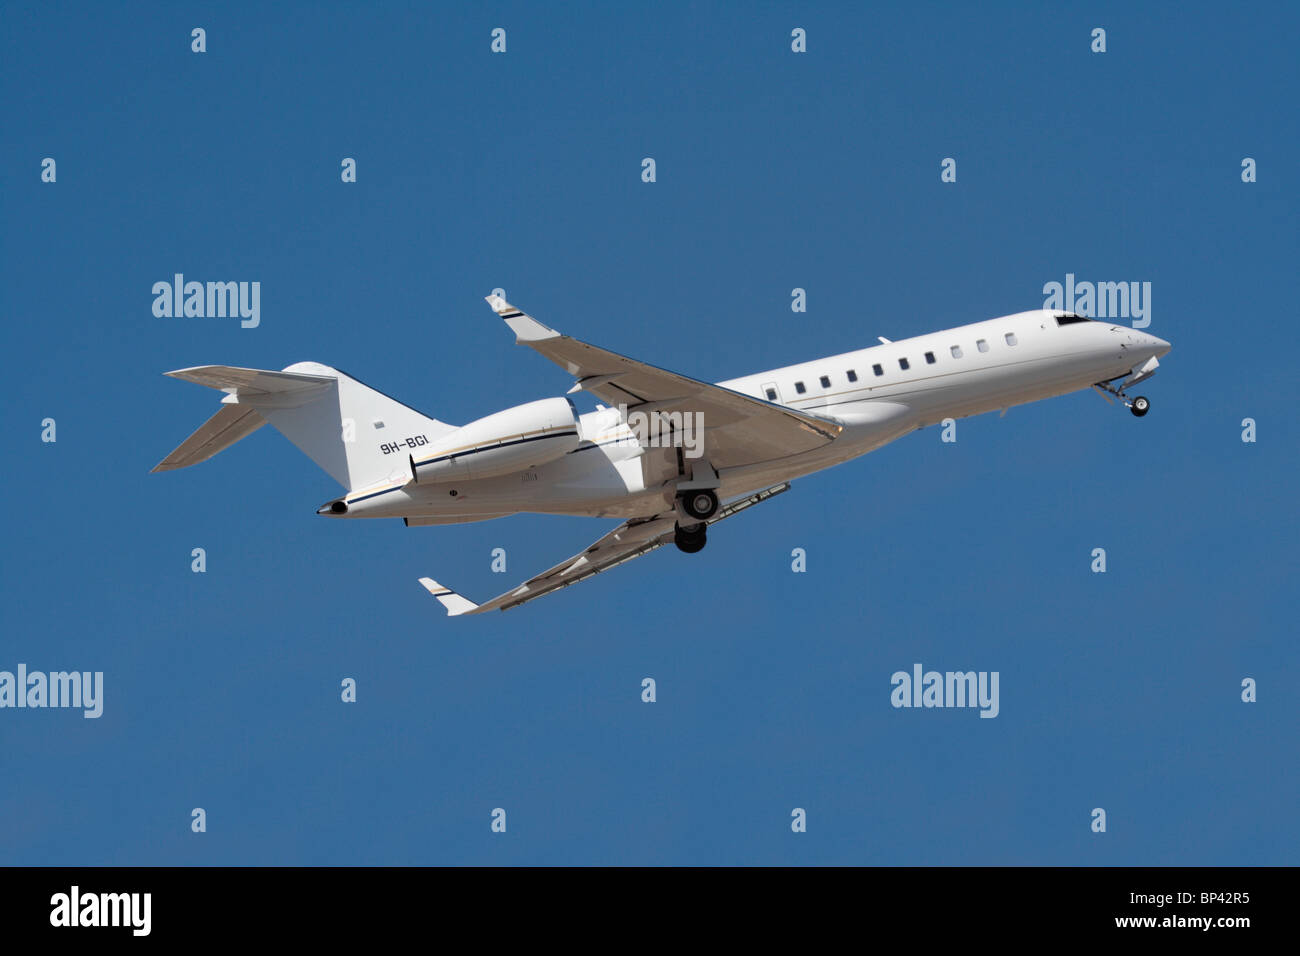 Bombardier Global Express XRS private jet operated by Comlux Aviation Malta, shown on takeoff against a clear blue - Stock Image